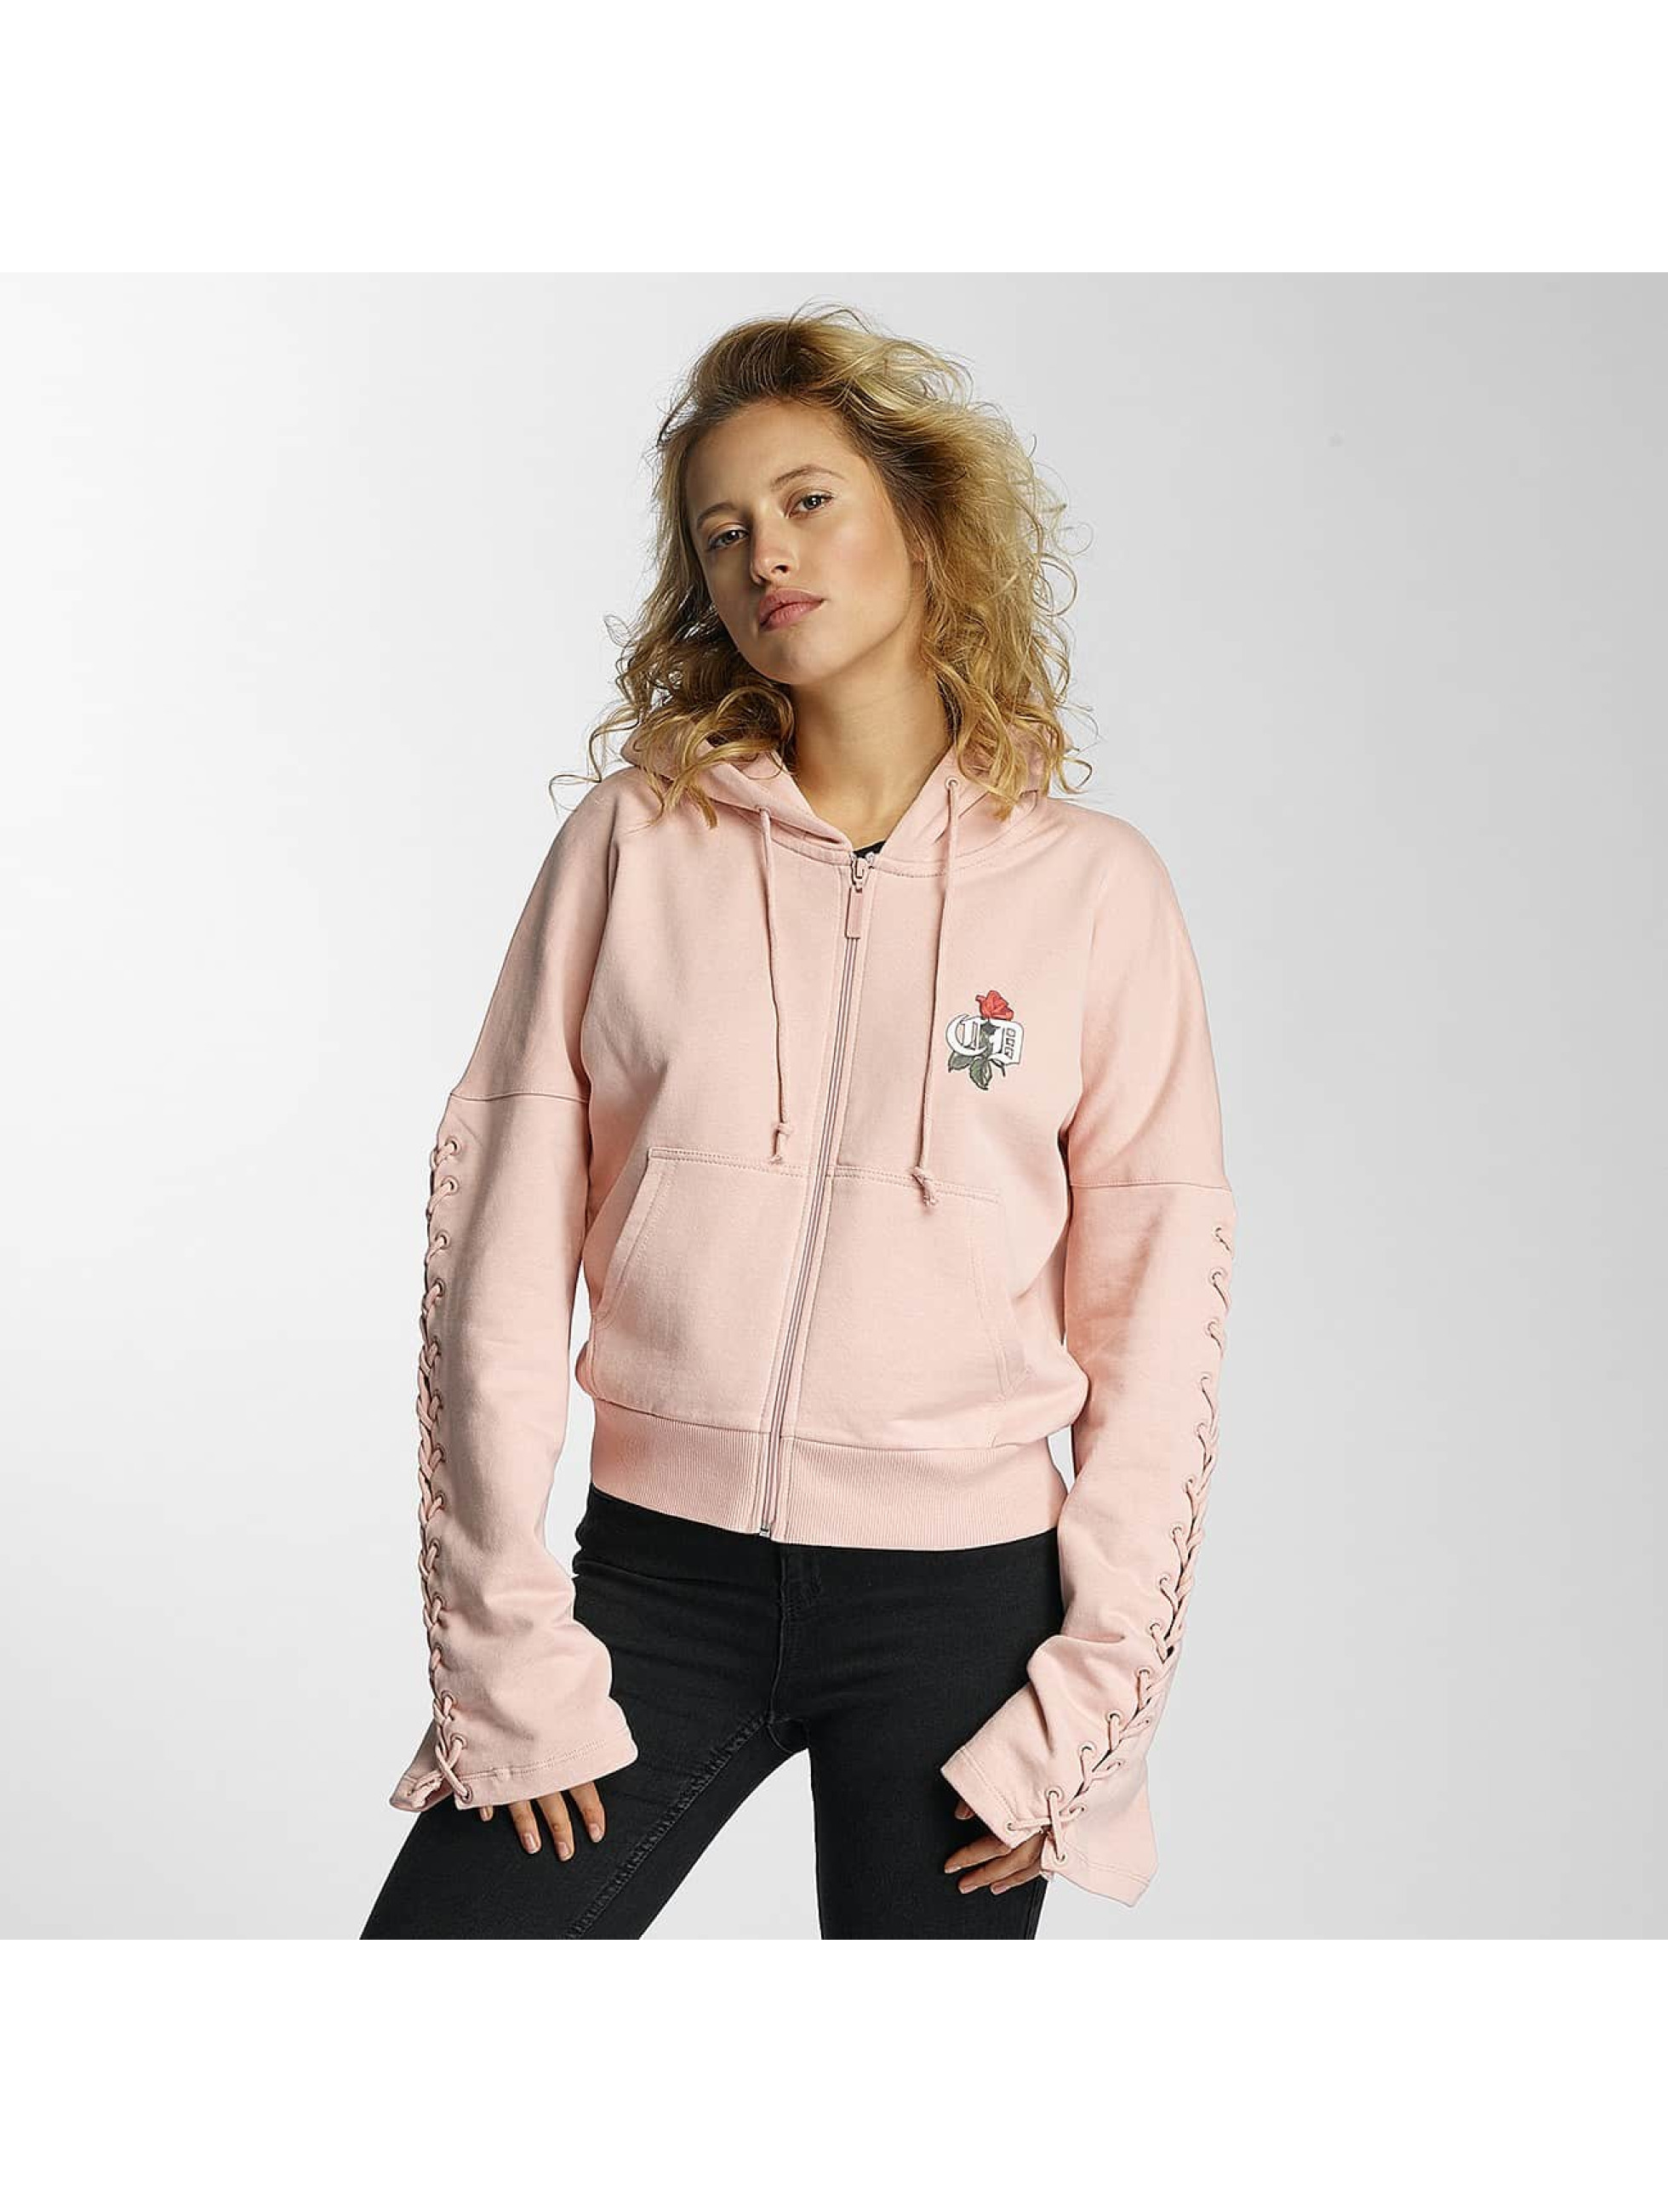 Criminal Damage Zip Hoodie Lacere rose